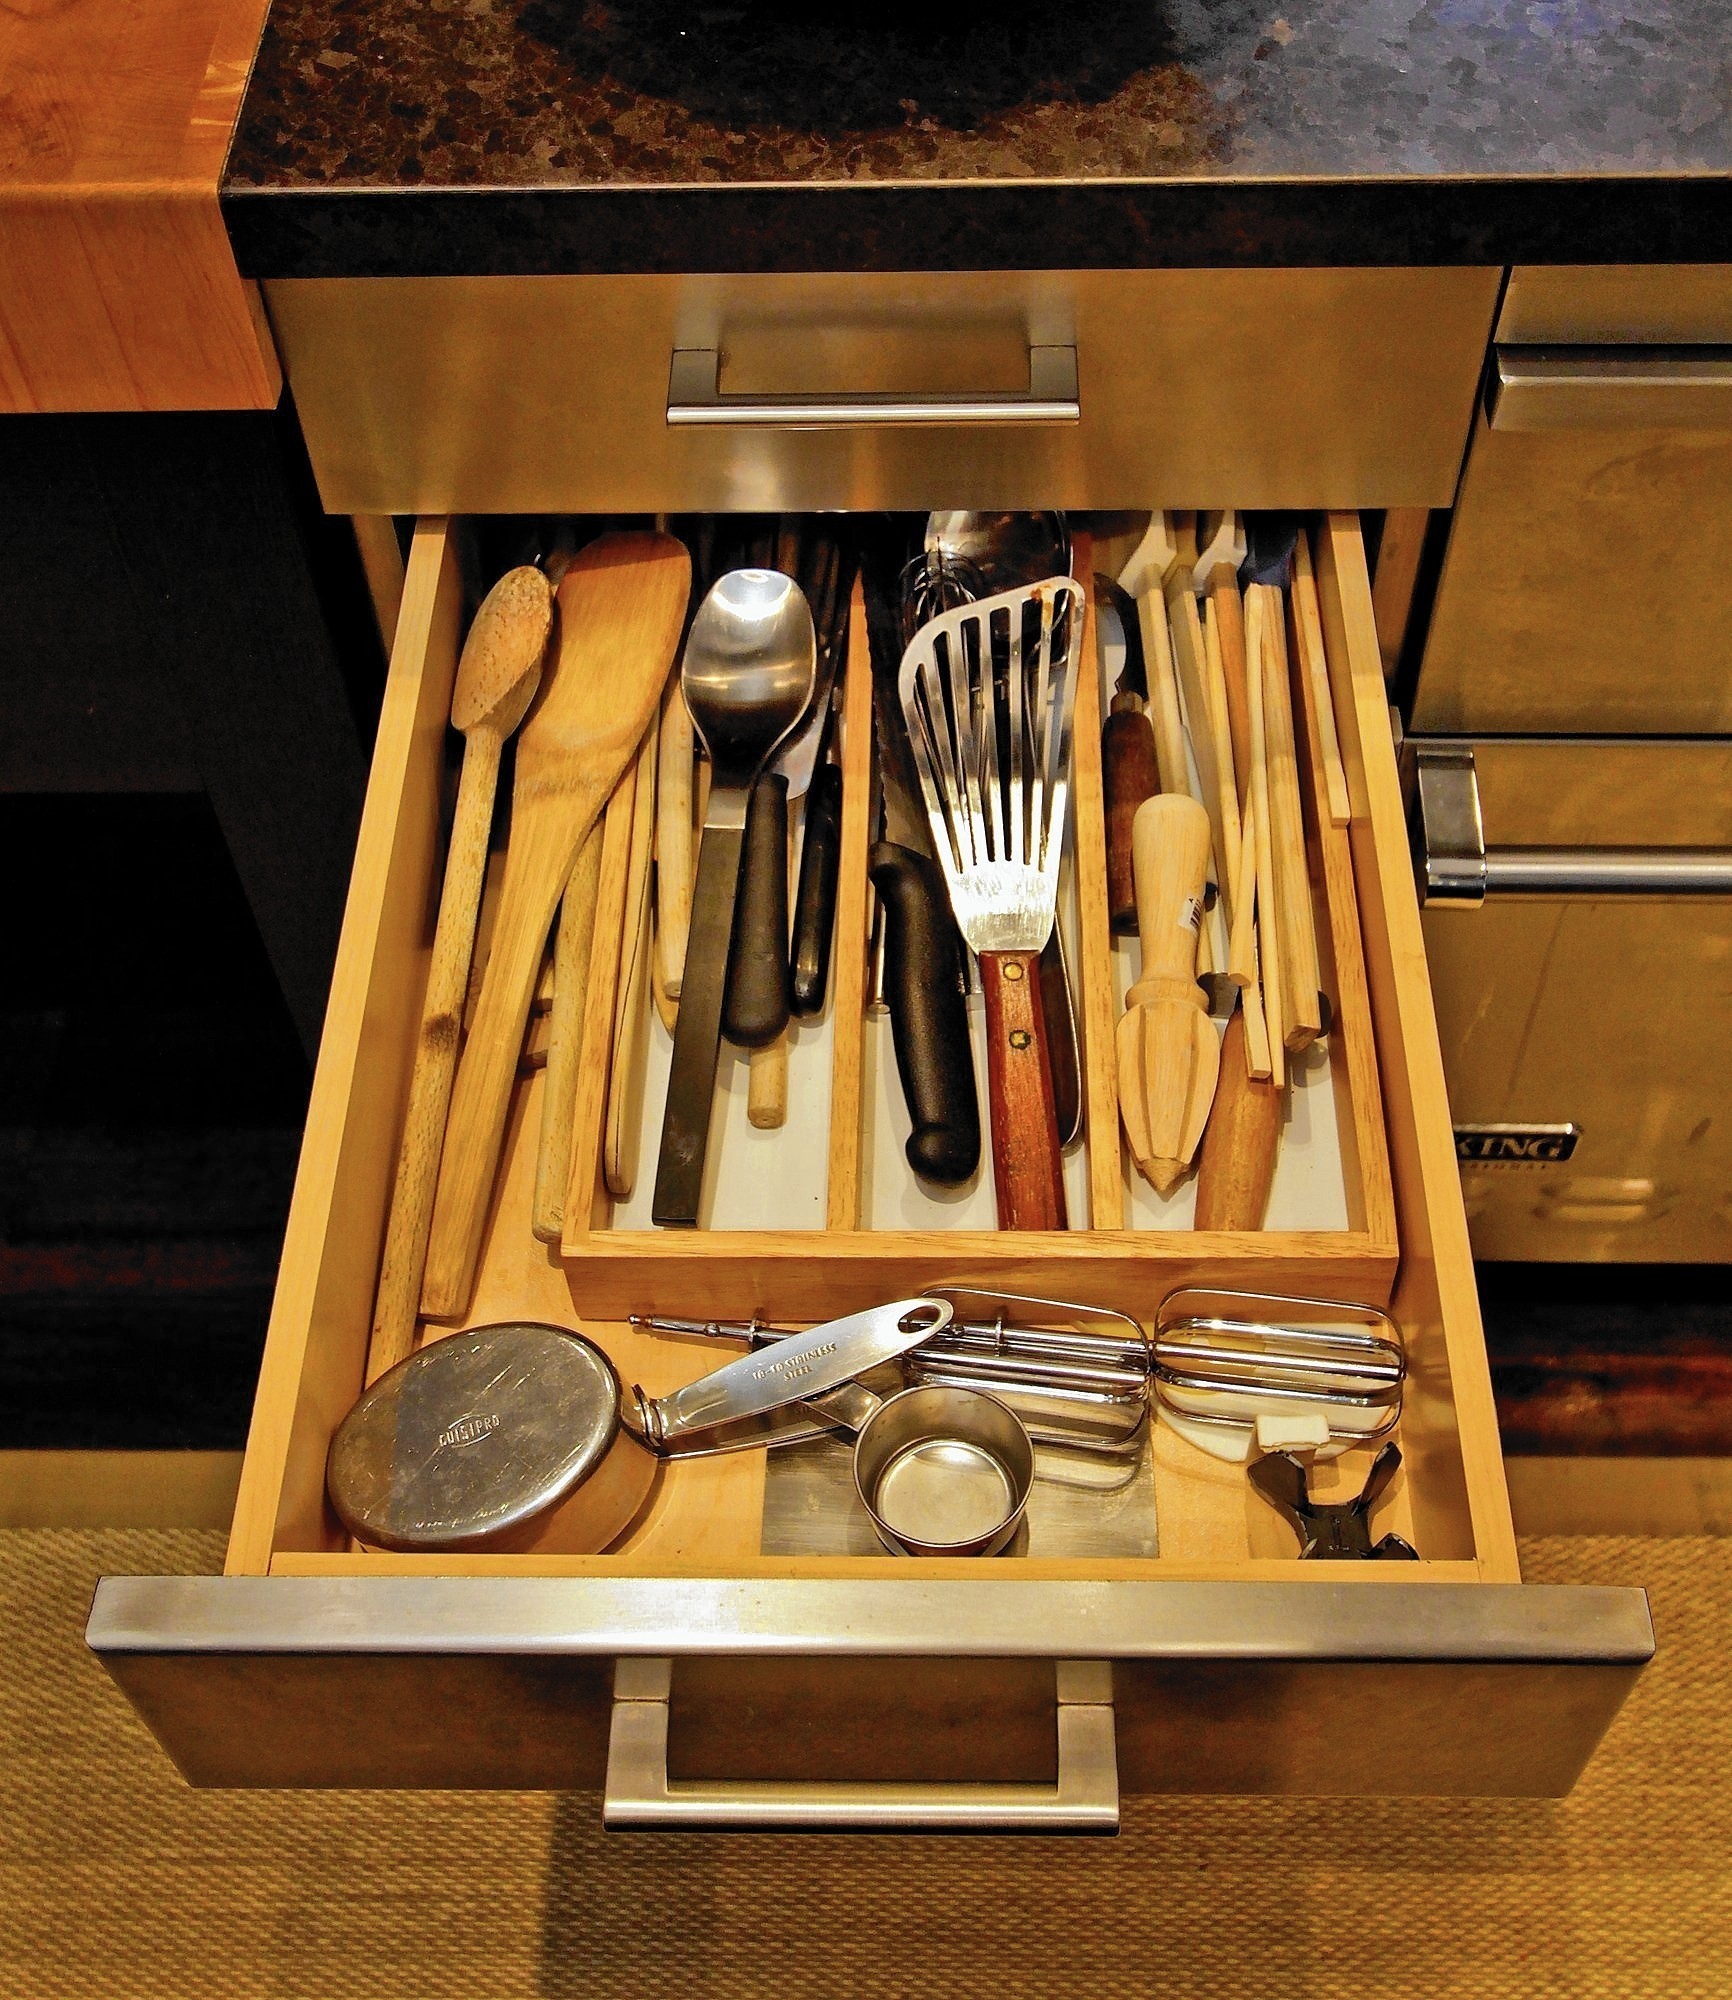 When she opens the kitchen cabinets, memories spill forth